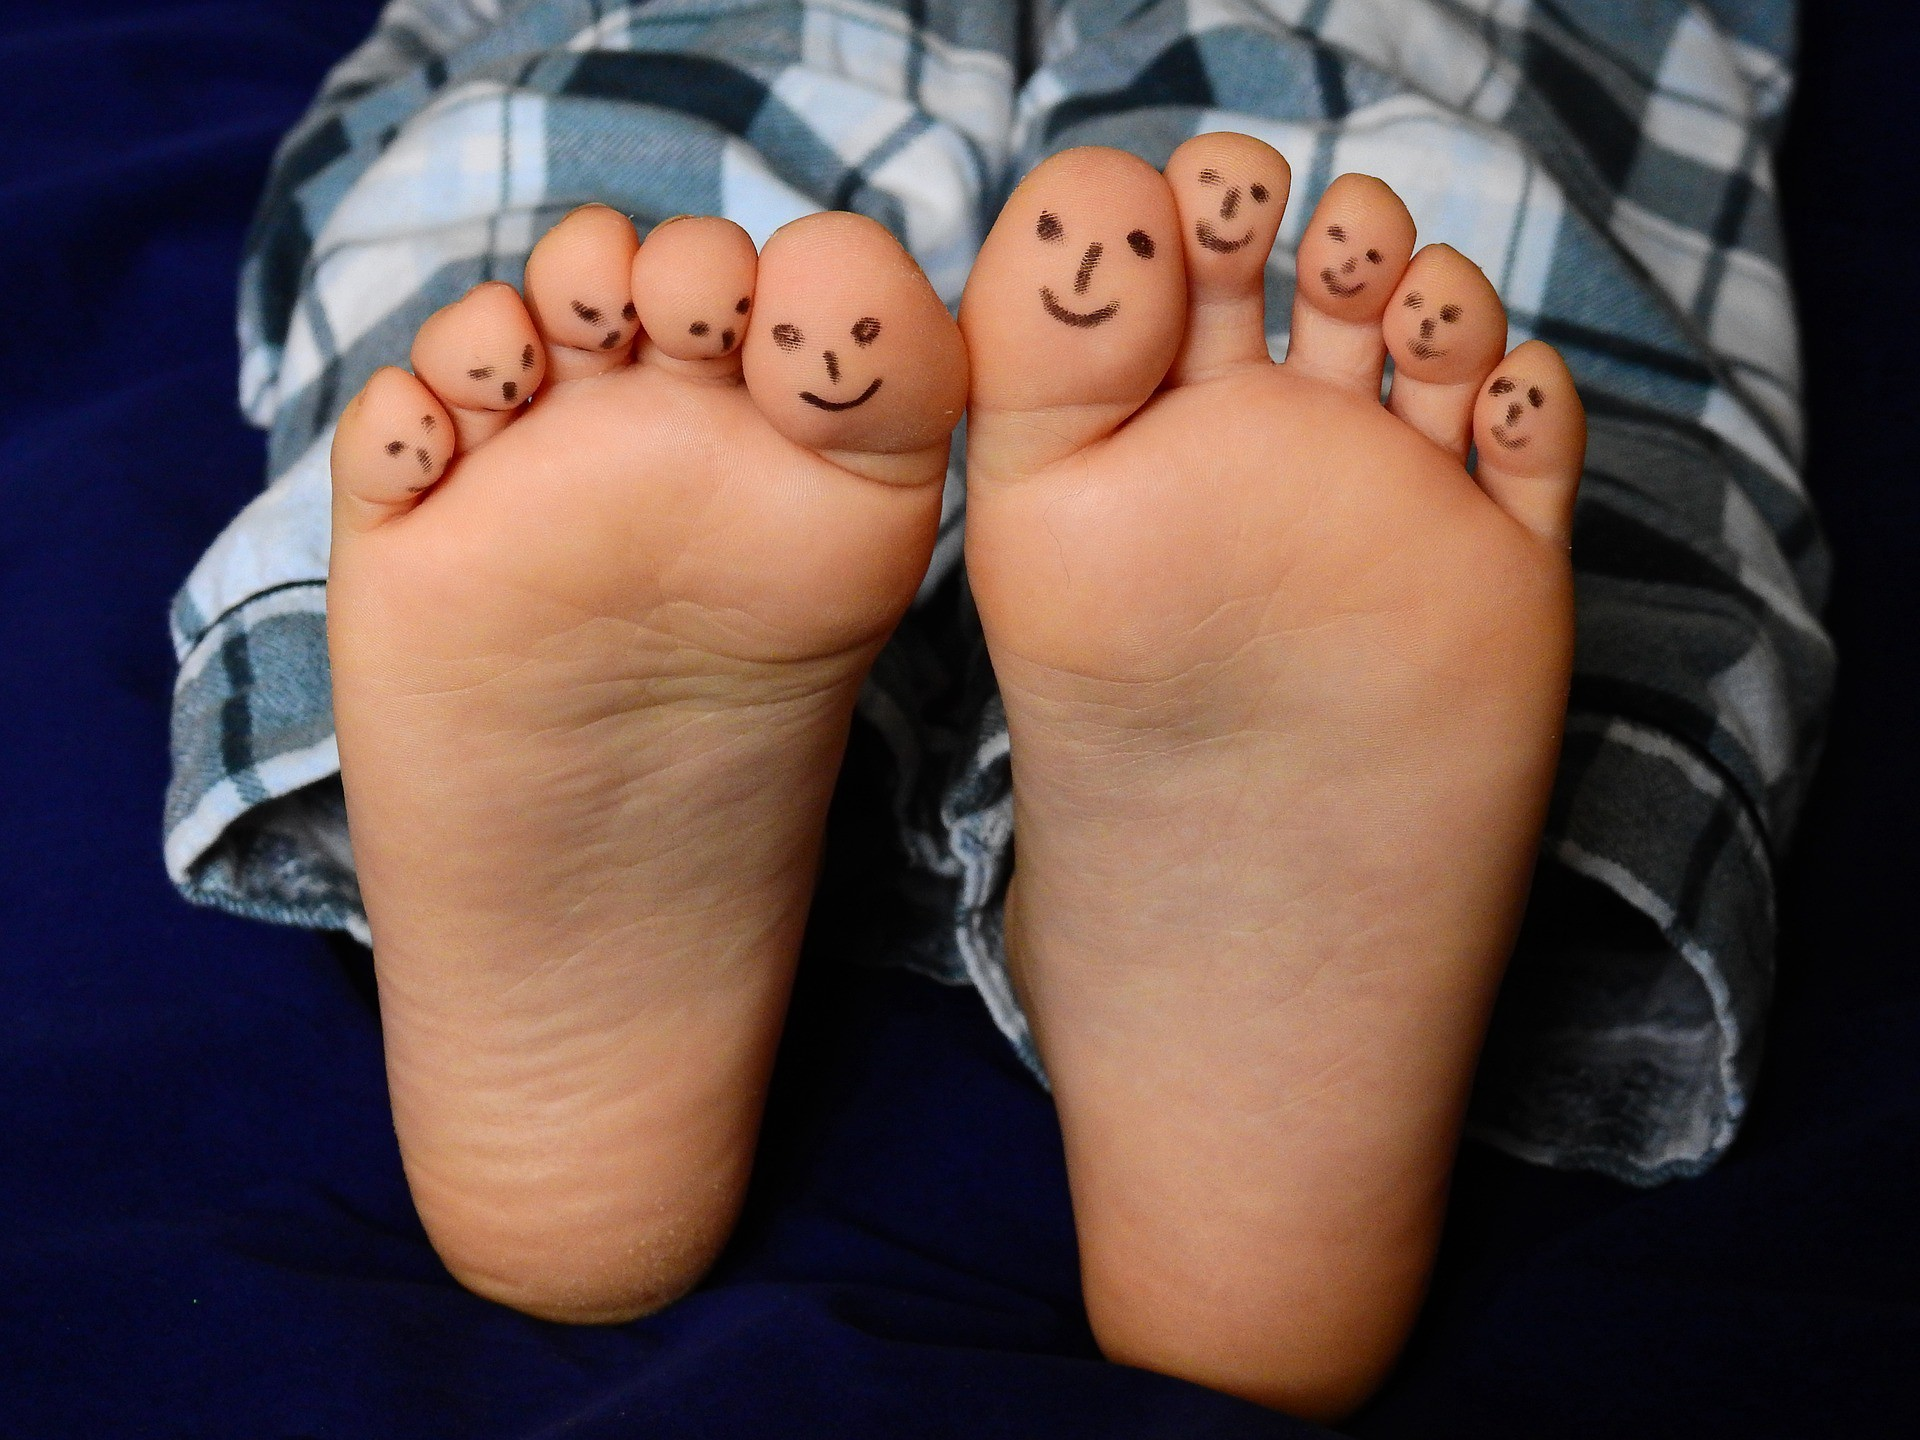 Photo of a child's feet with black marker drawings of happy faces on each of their toes. Child is wearing black plaid pajamas